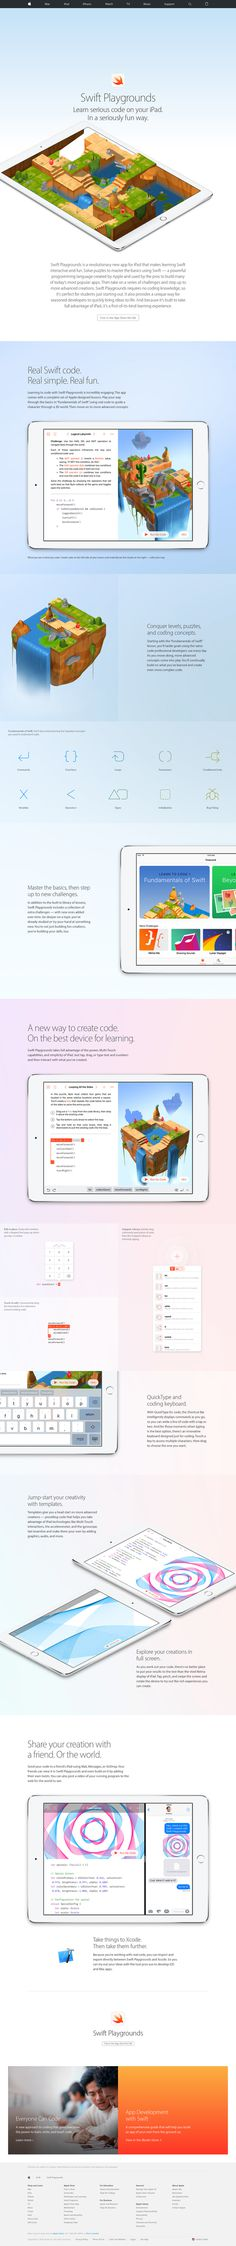 Swift Playgrounds - Preview - Apple